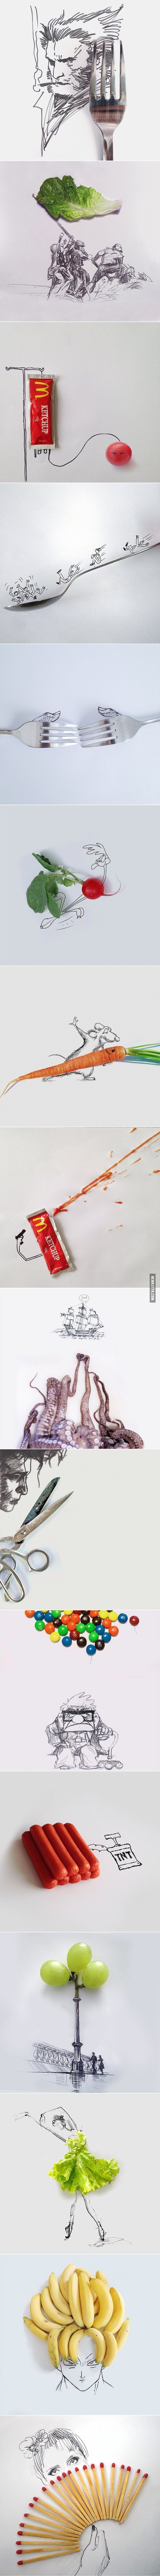 creative_drawings_with_food_fench_121014